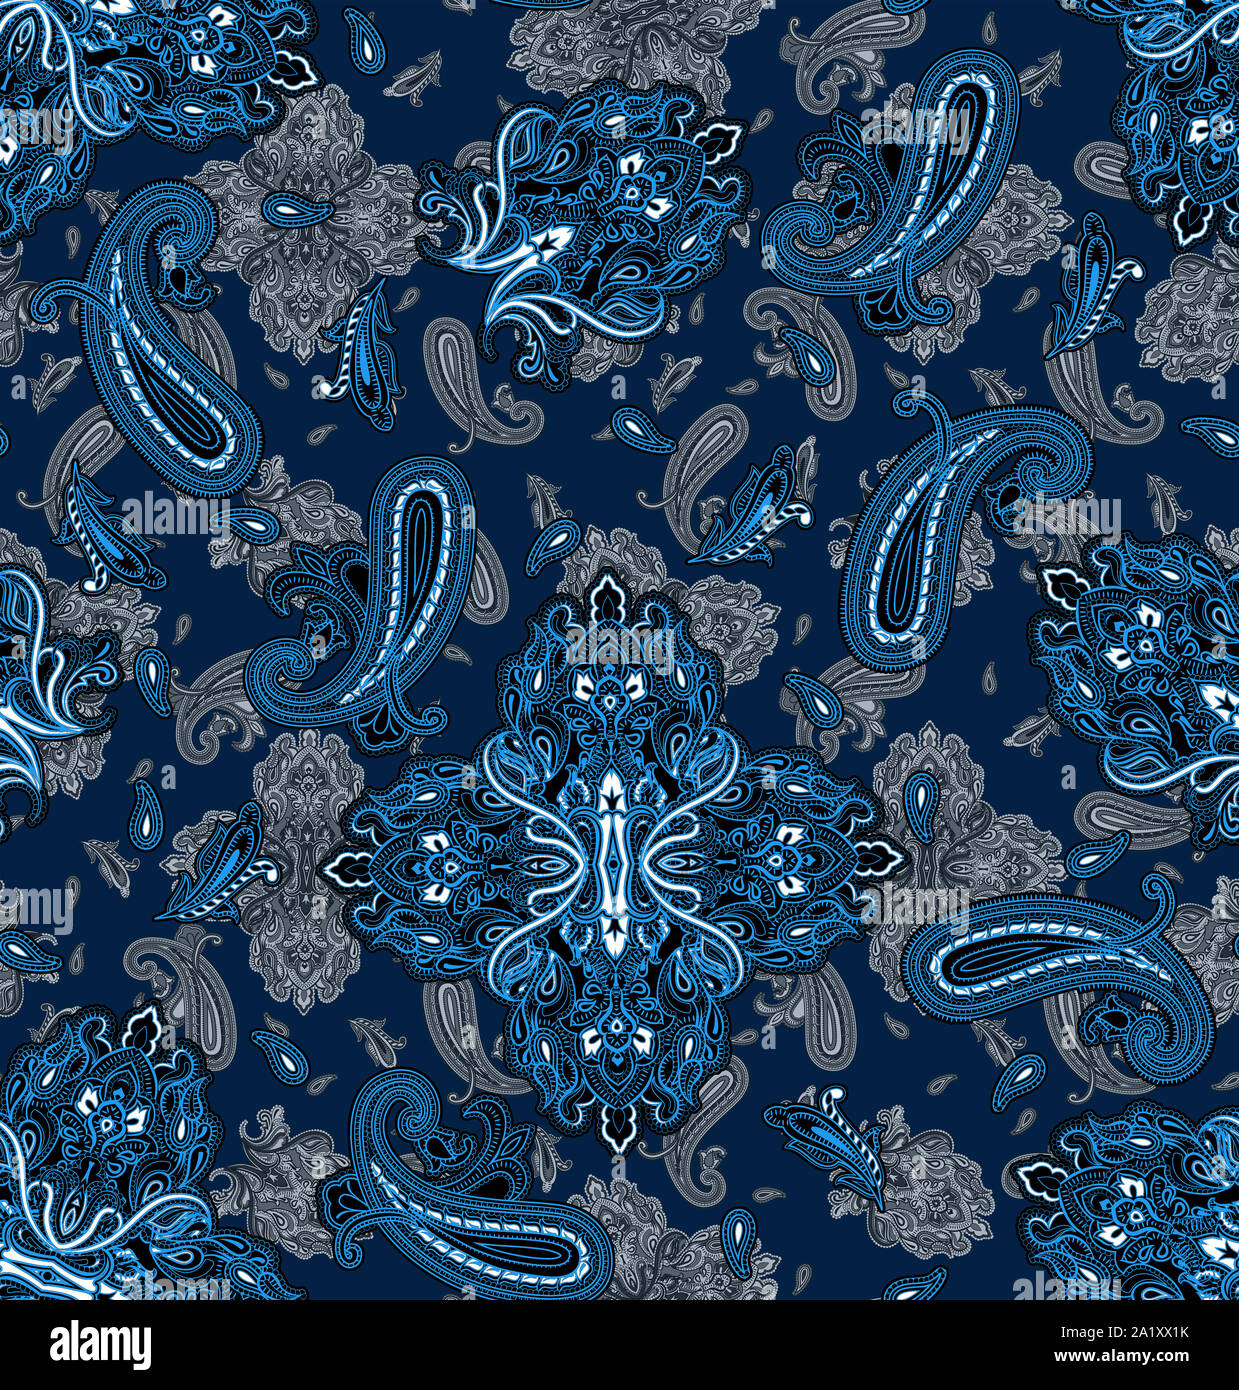 Seamless ethnic paisley pattern. Fashion print for clothes